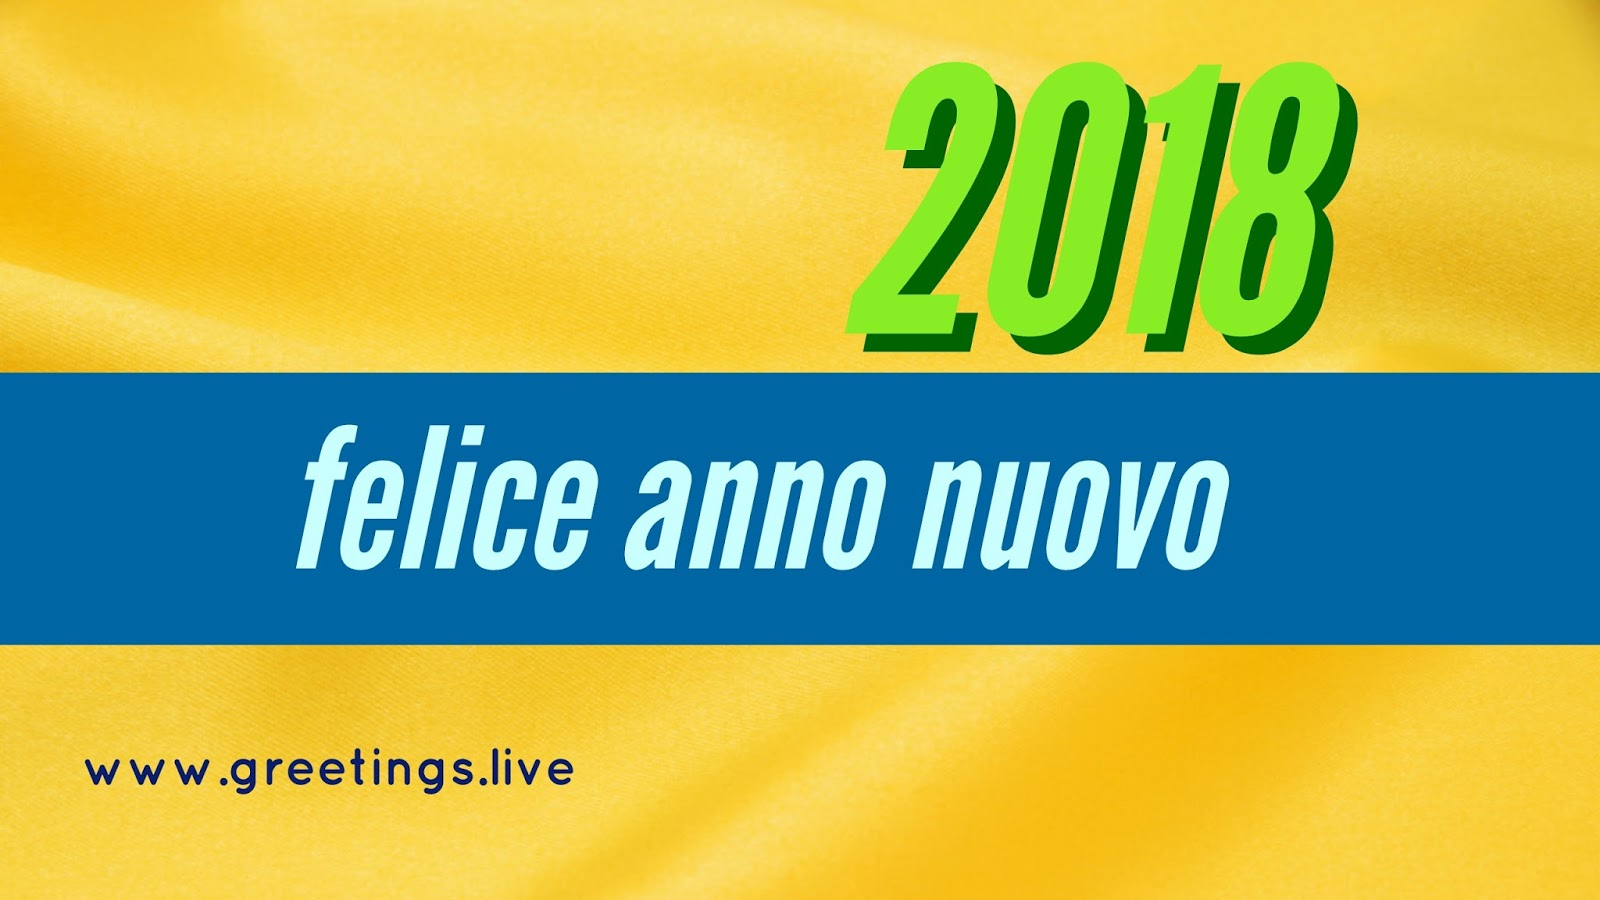 2018 new year wishes greetings happy new year in italian language happy new year in italian language greetings is felice anno nuovo m4hsunfo